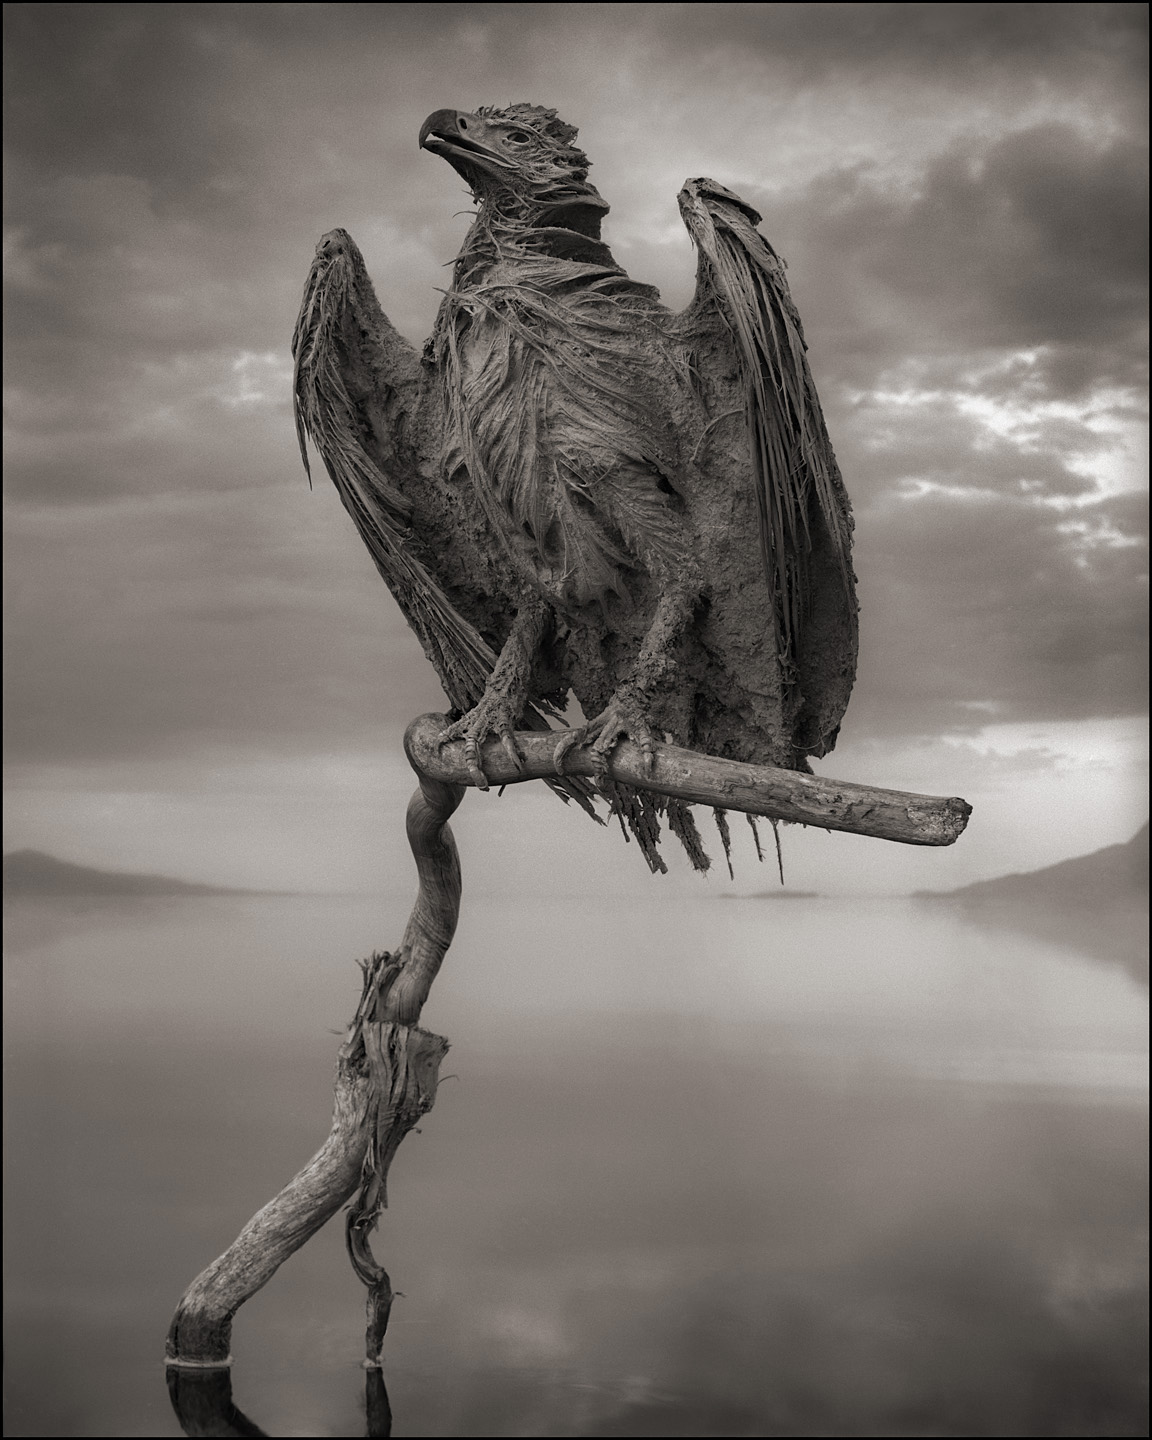 Nick Brandt – Calcified Fish Eagle, damned tanzanie lake